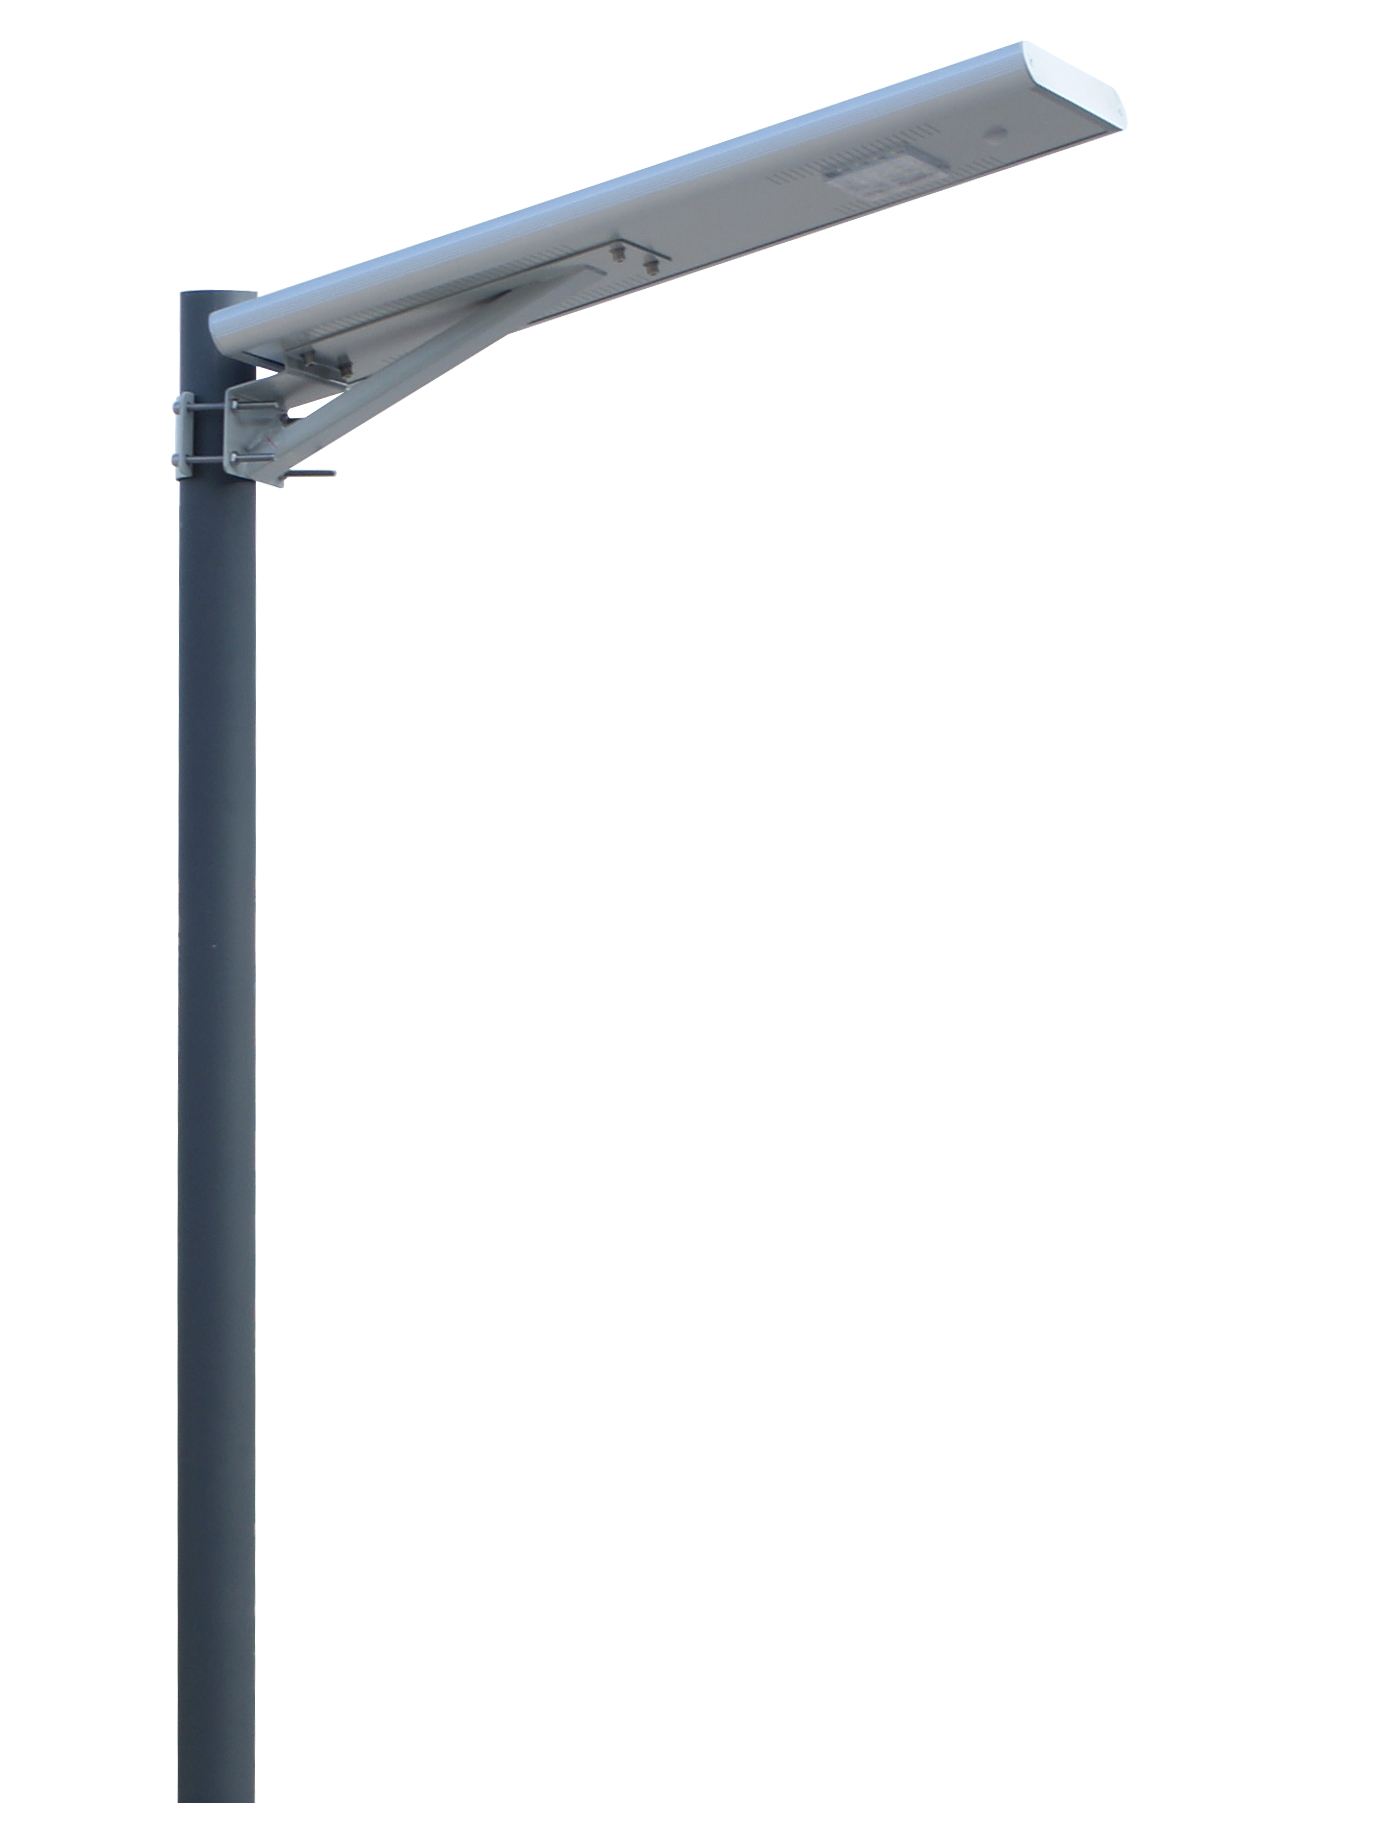 Led Lighting Prices Led 100w Prices Of Solar Street Lights 60w Led Lighting Philippines Buy Led Light Price List Integrated Solar Led Street Light Led Street Light 65w